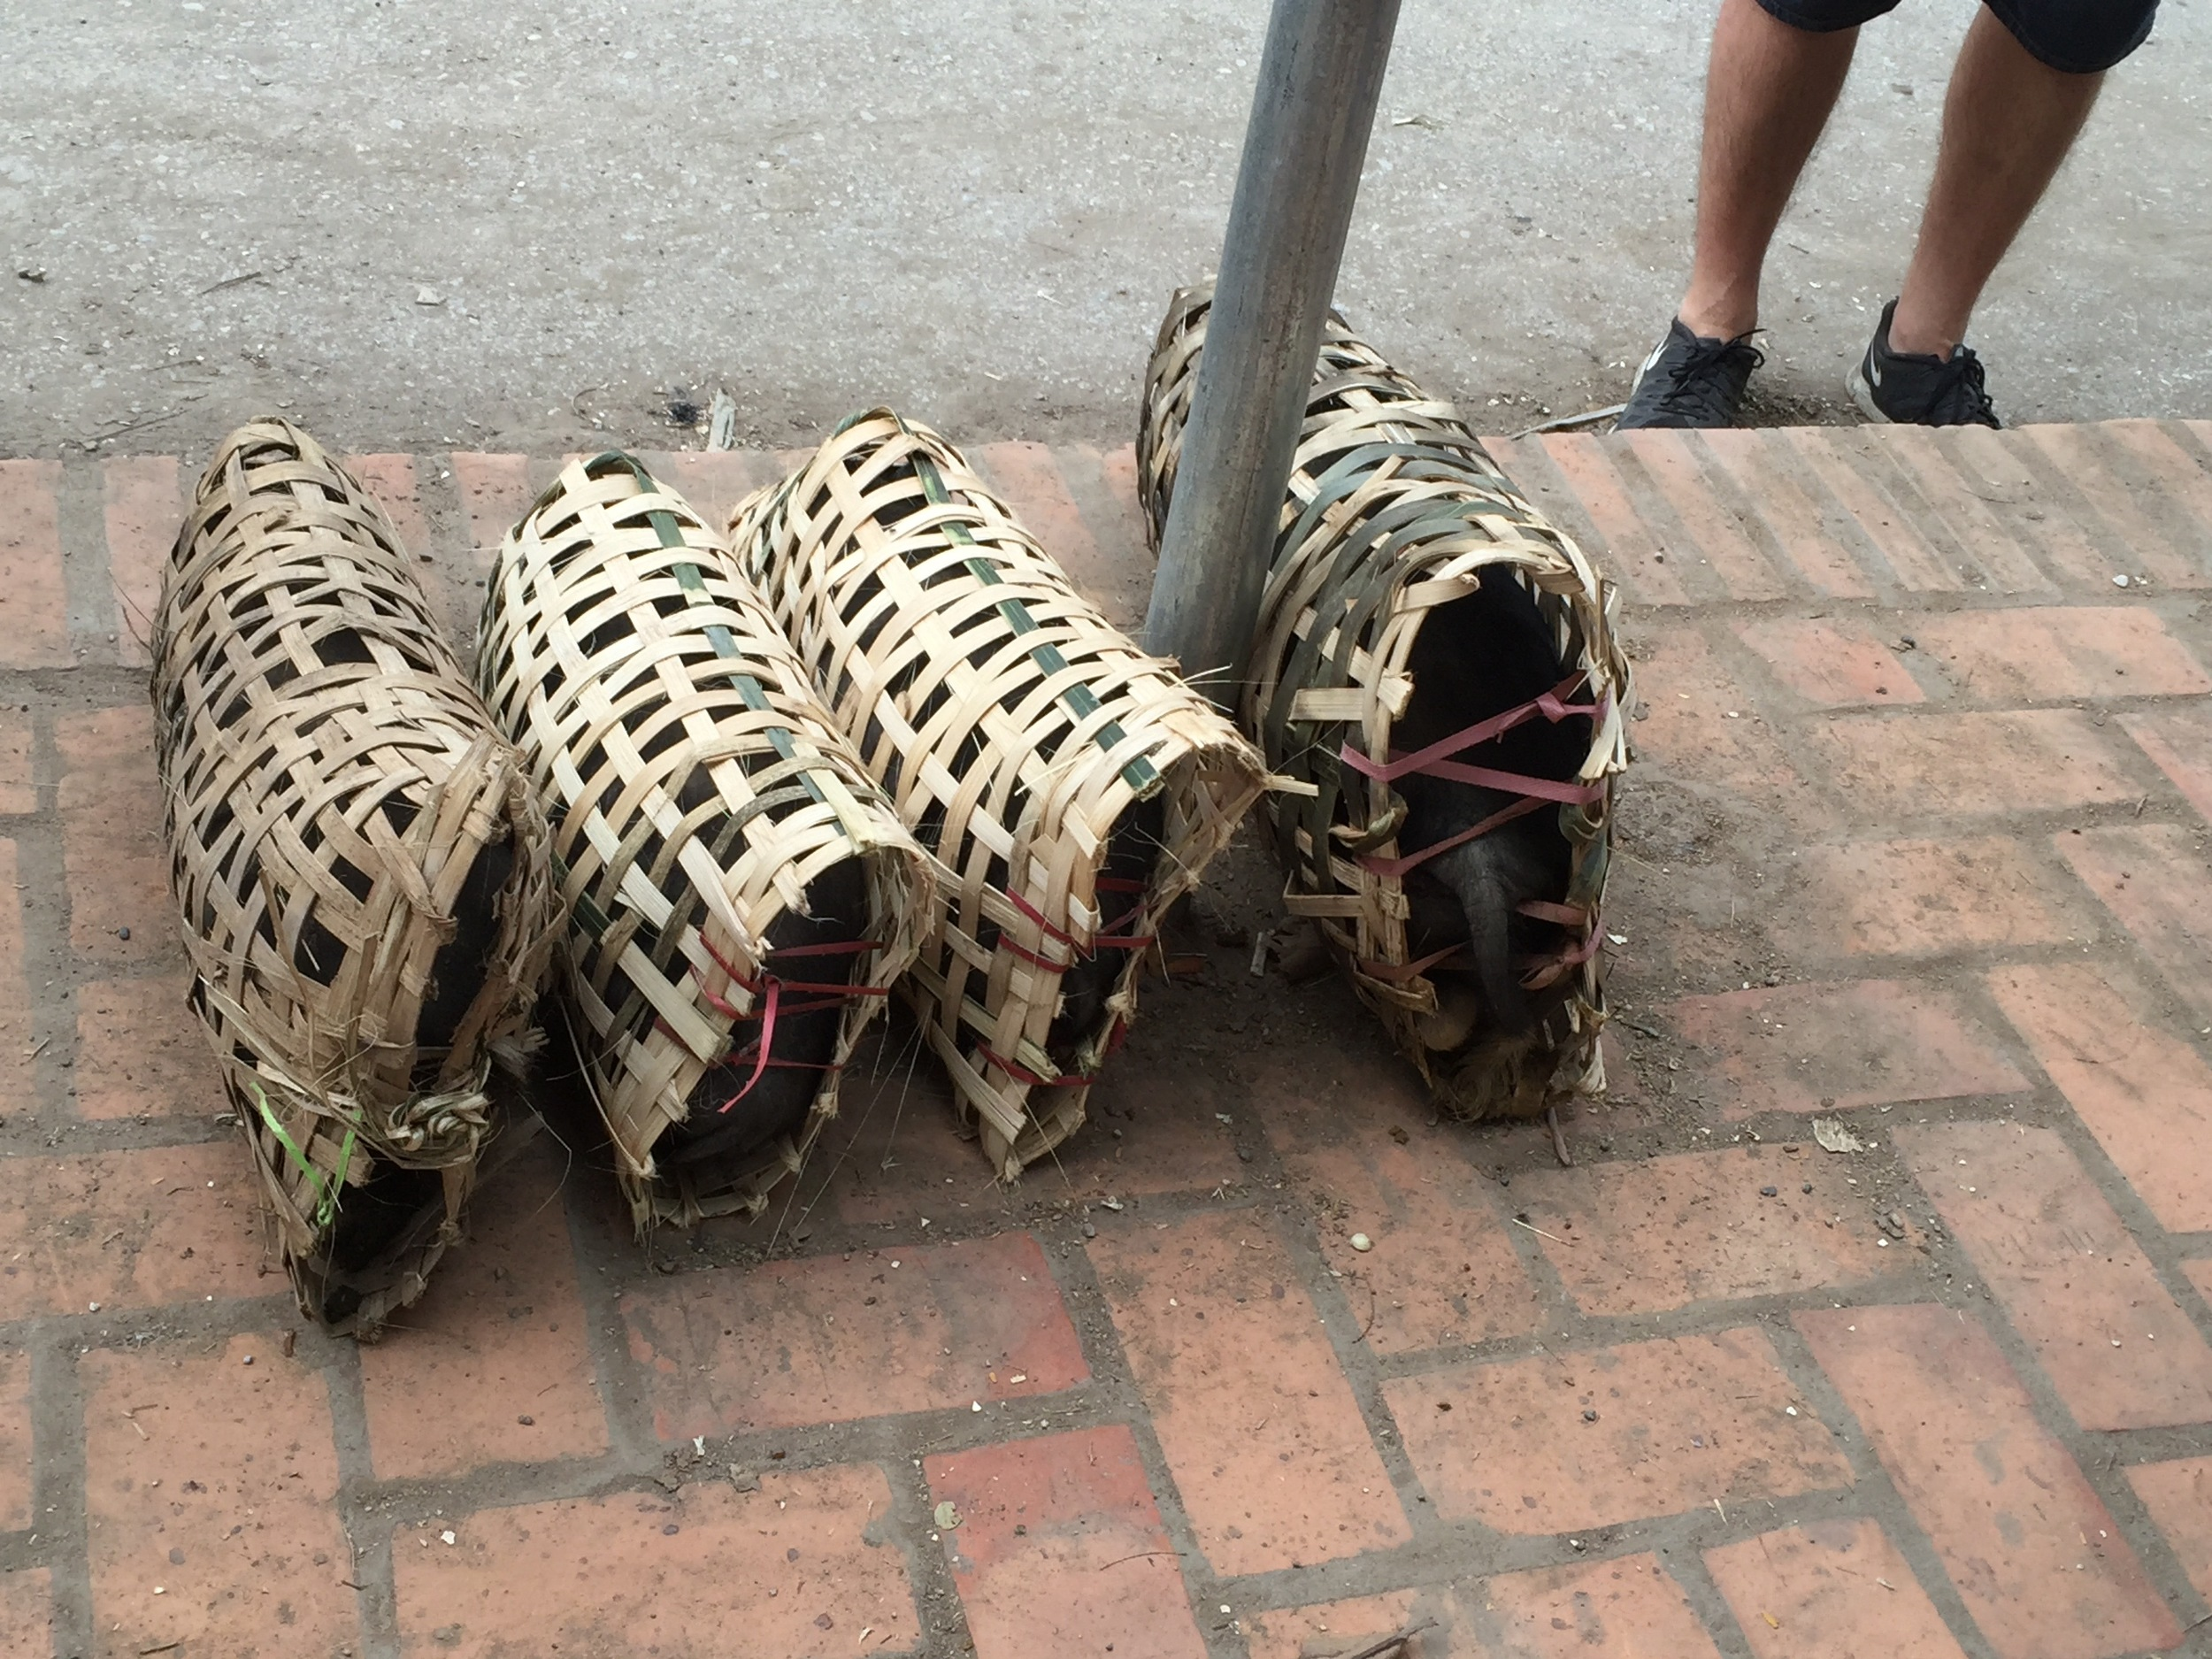 Live piglets confined to woven baskets are waiting at the public bus stop, where they will be picked up and delivered to local restaurants for slaughter.